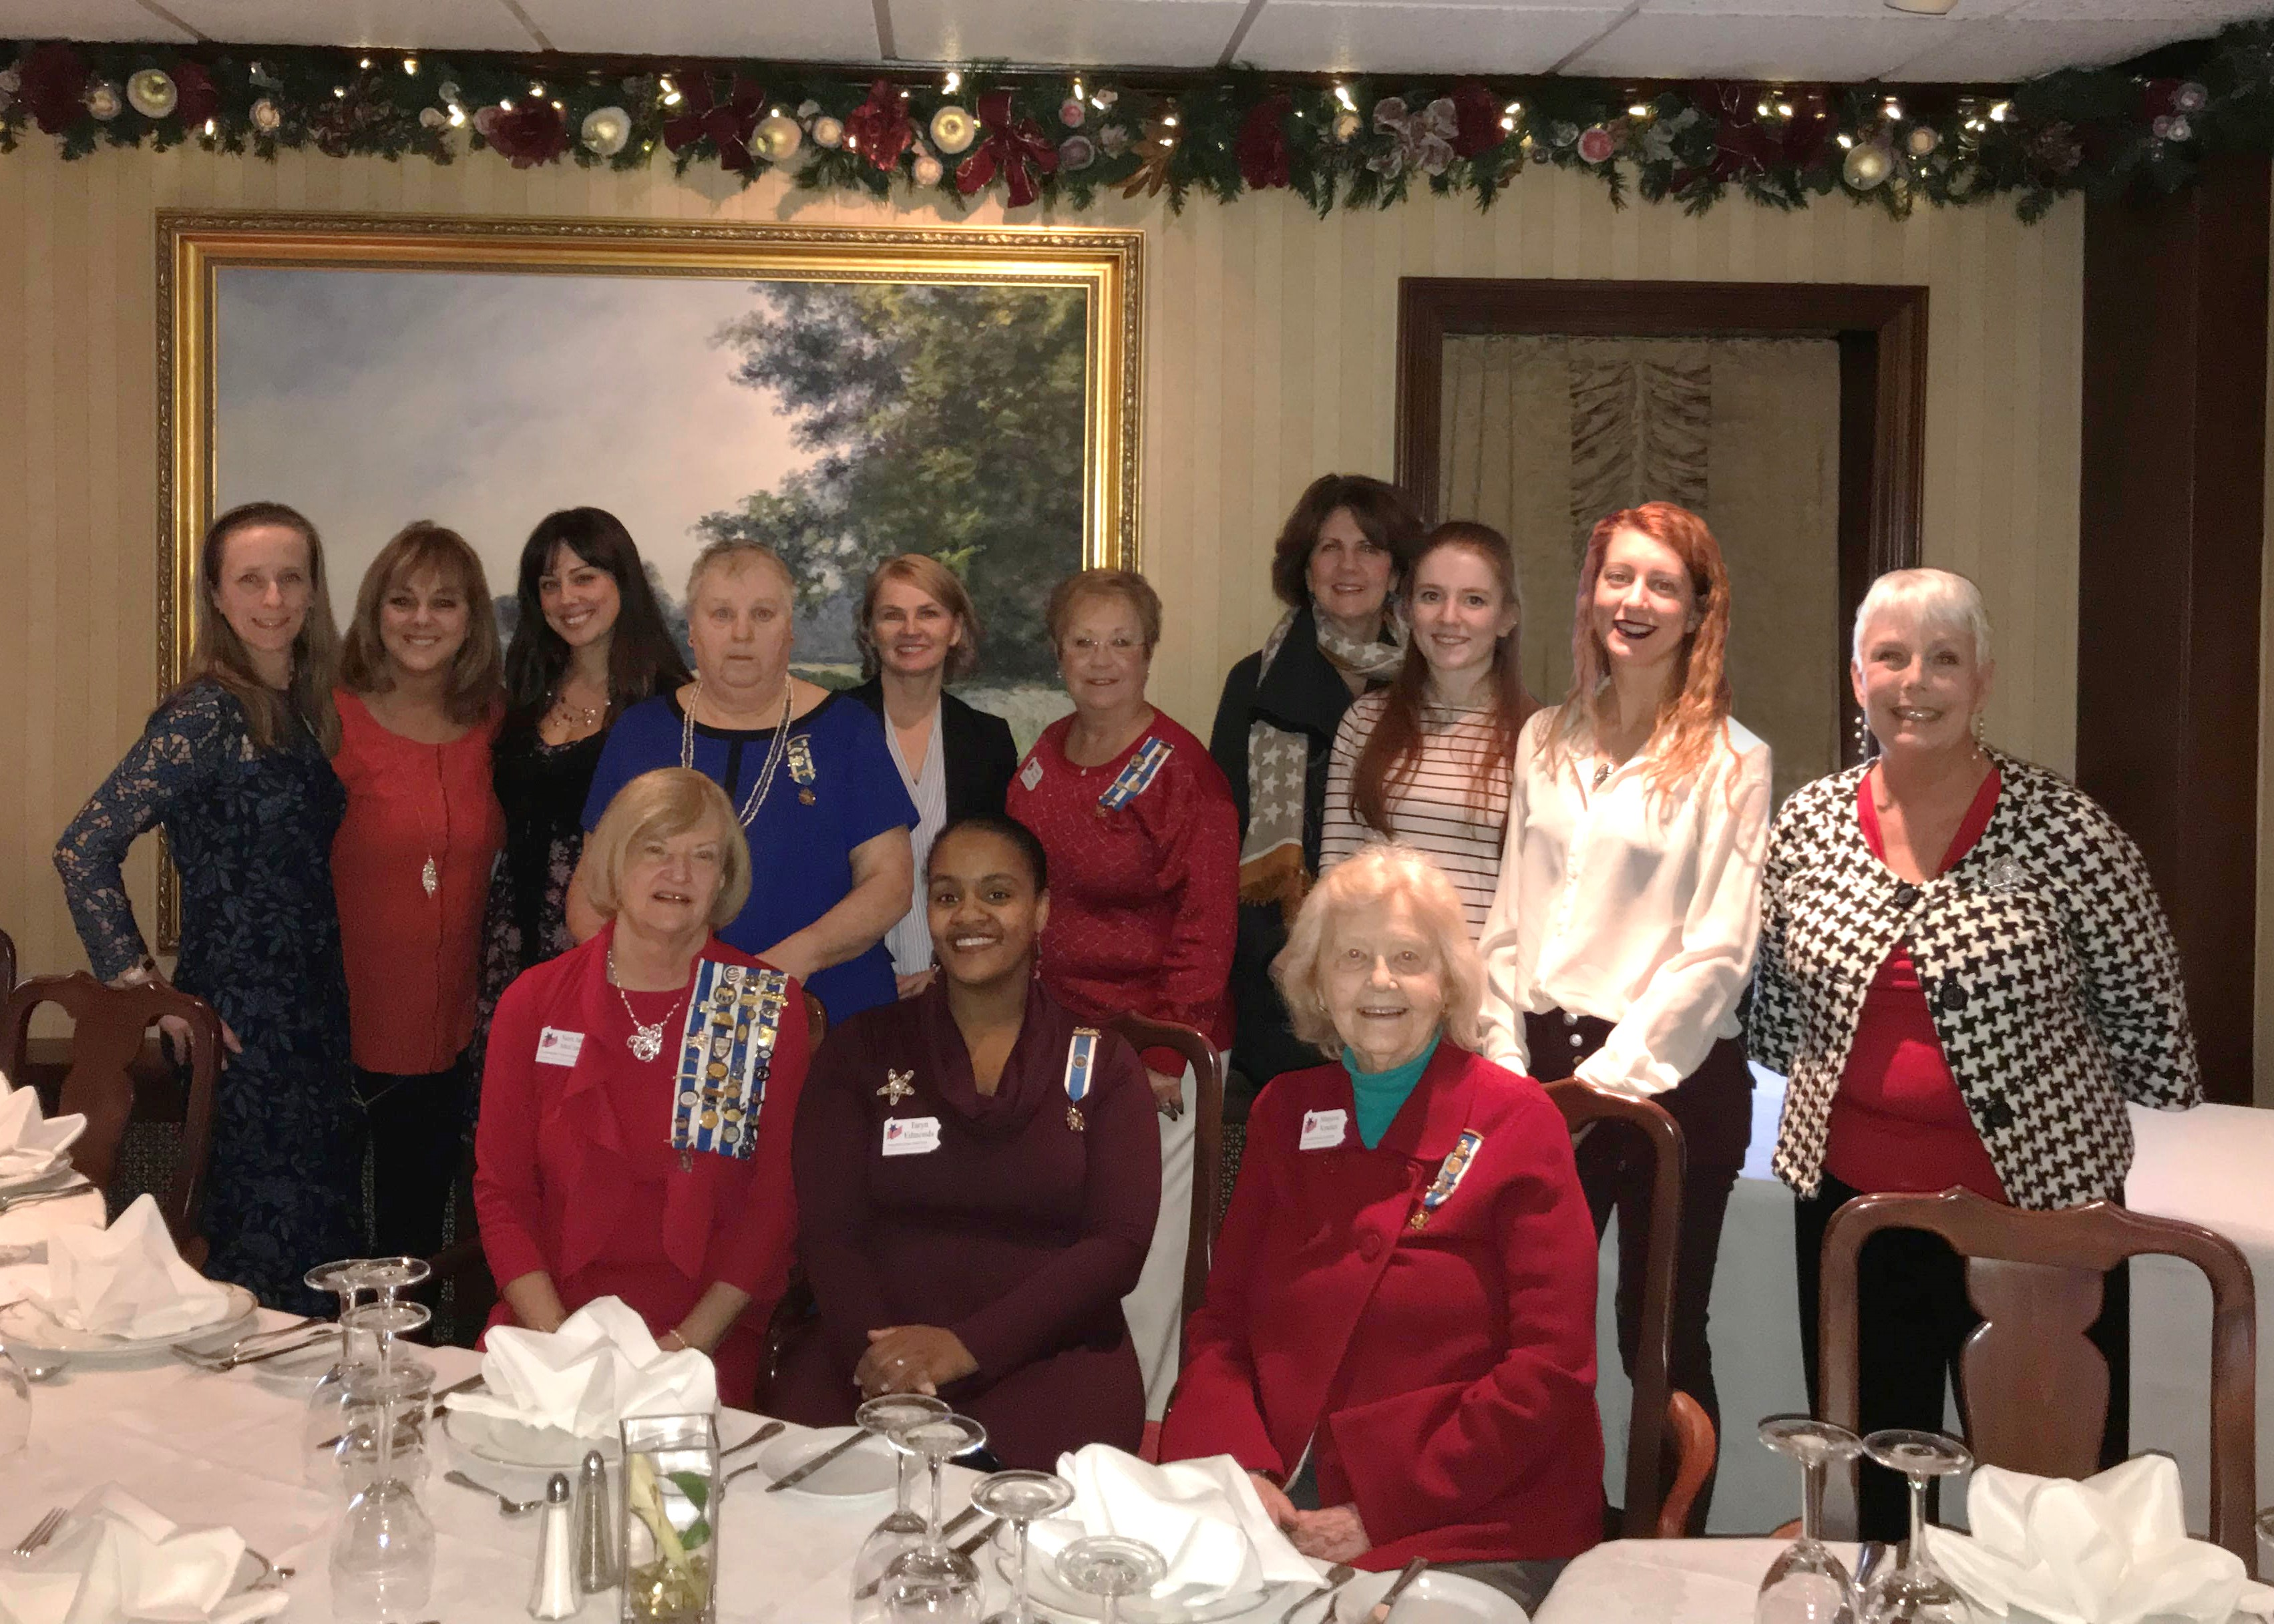 Members standing together after holiday luncheon